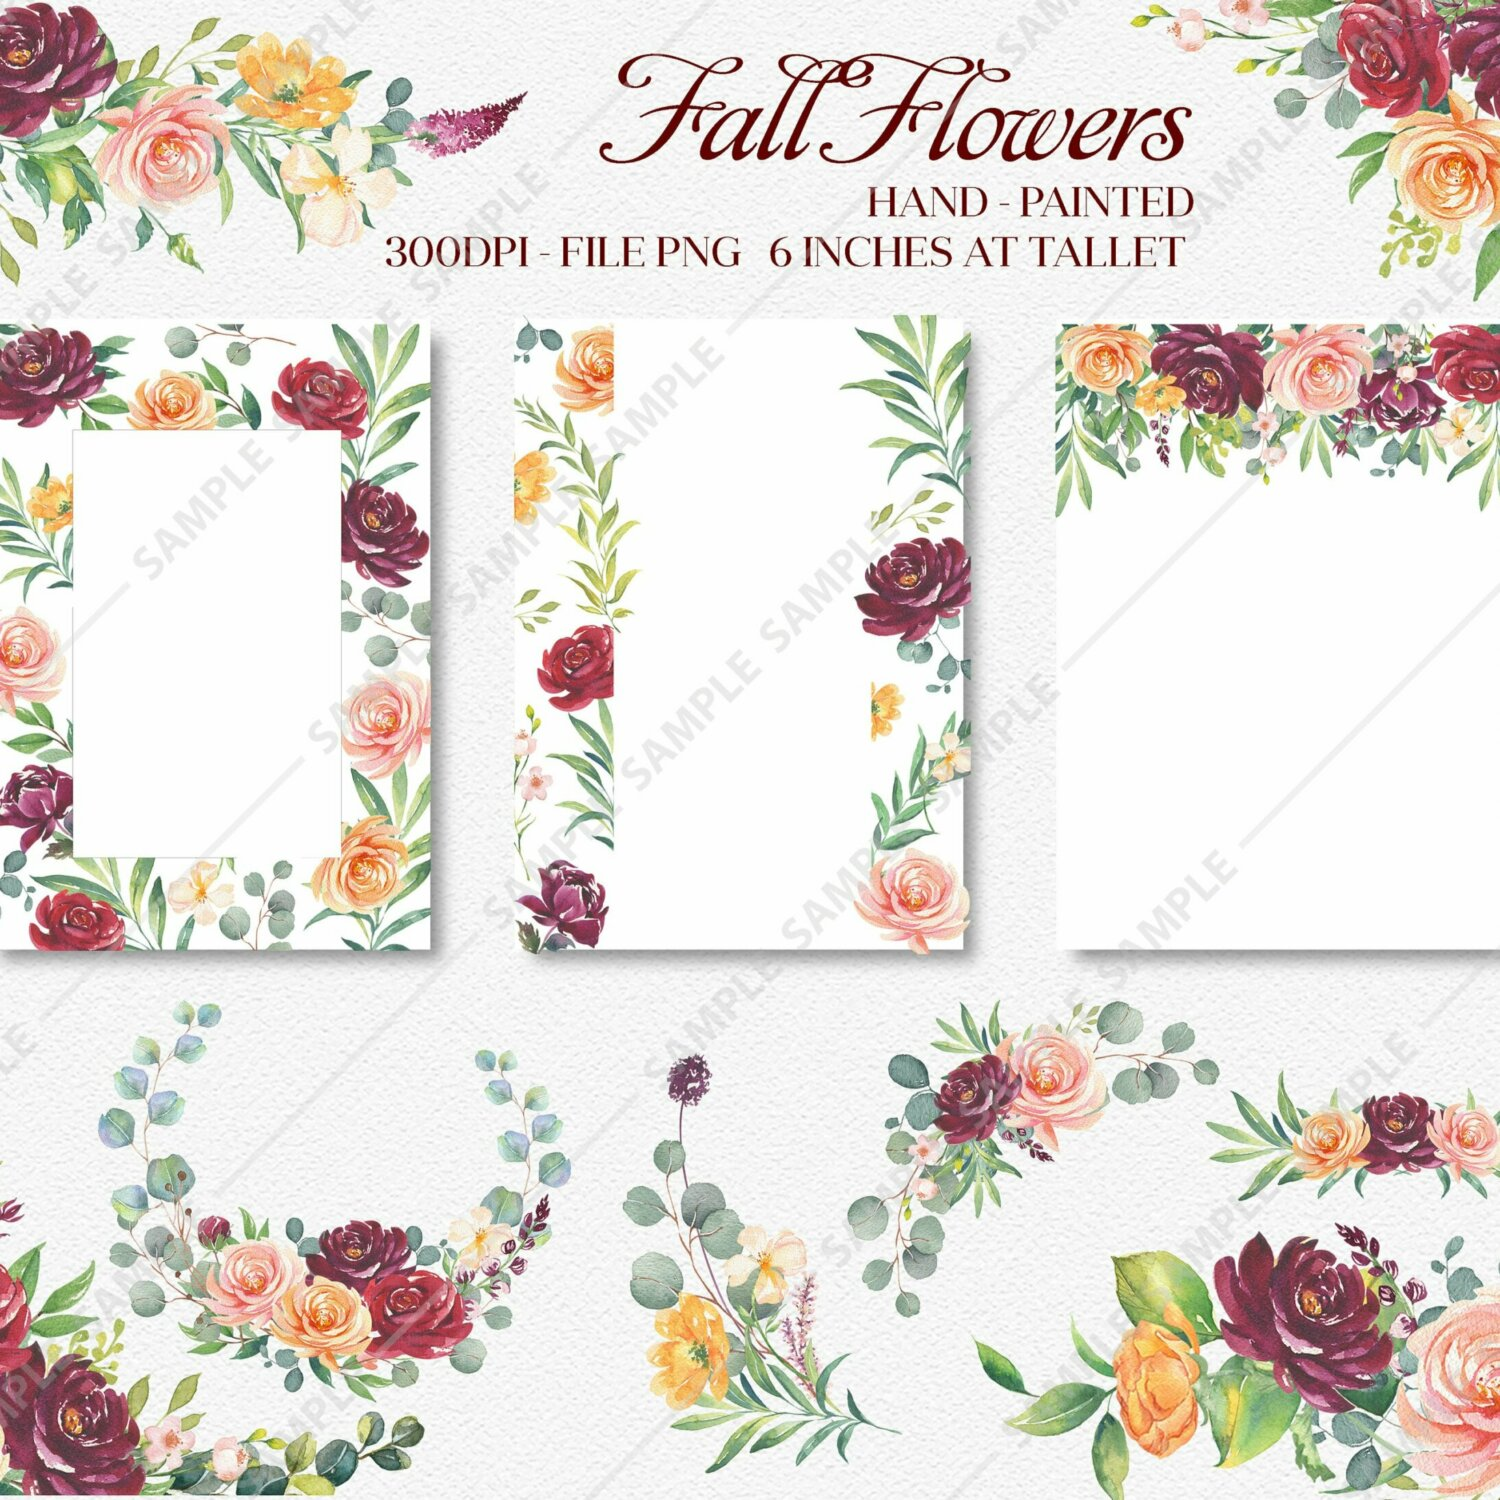 Roses Orange Flower Clipart, watercolor flower clipart burgundy and blush, Boho Bordo Watercolor Clipart, Roses Autumn clipart wedding | WCCRF_06